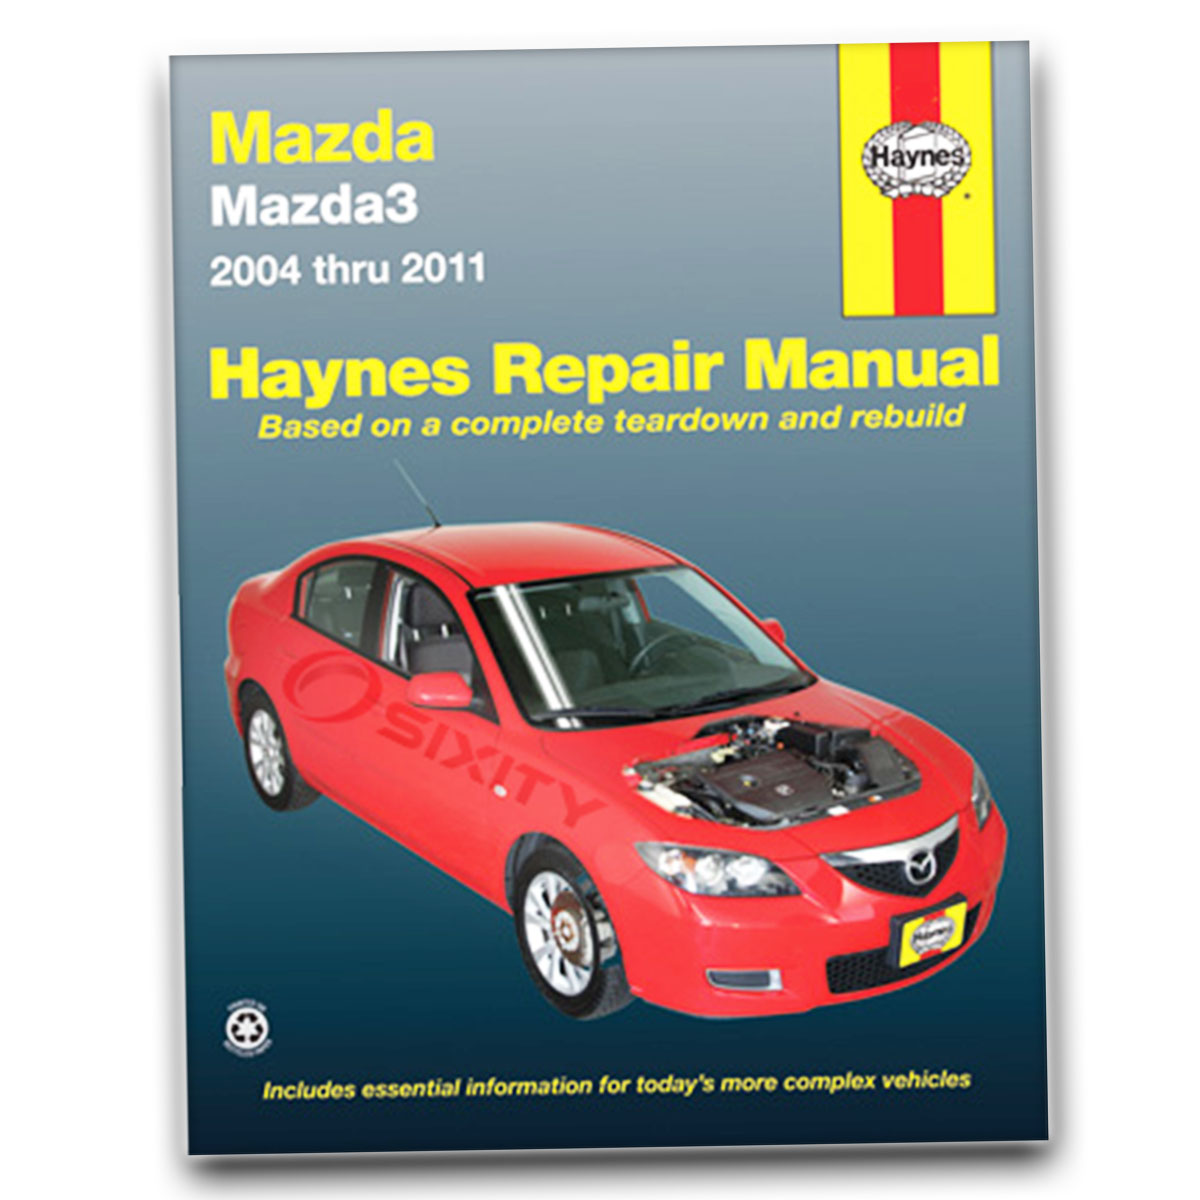 mazda 3 haynes repair manual i mazdaspeed sp23 shop service garage rh ebay com 2005 mazda tribute repair manual pdf mazda mpv 2005 repair manual